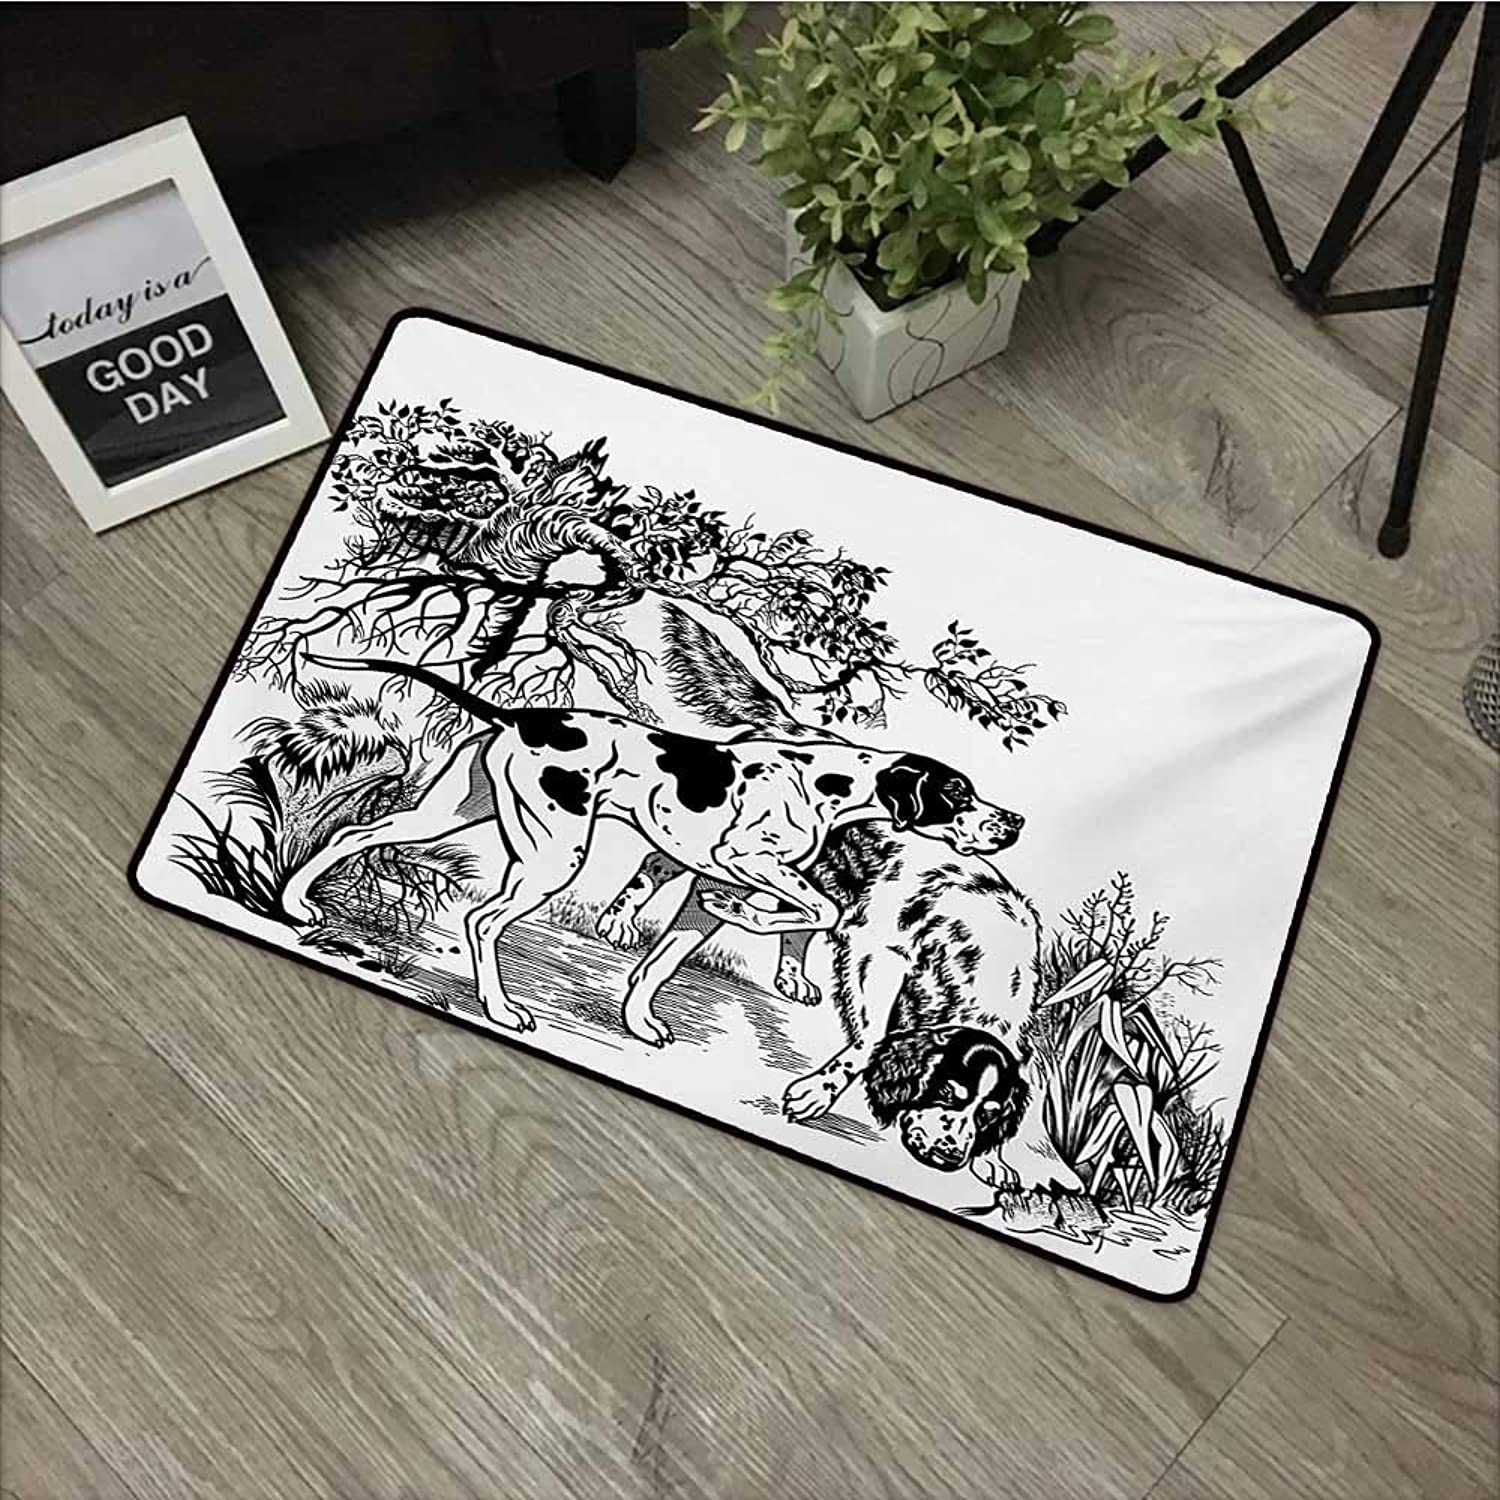 Pool Anti-Slip Door mat W35 x L59 INCH Hunting,Hunting Dogs in The Forest Monochrome Drawing English Pointer and Setter Breeds,Black White Easy to Clean, Easy to fold,Non-Slip Door Mat Carpet